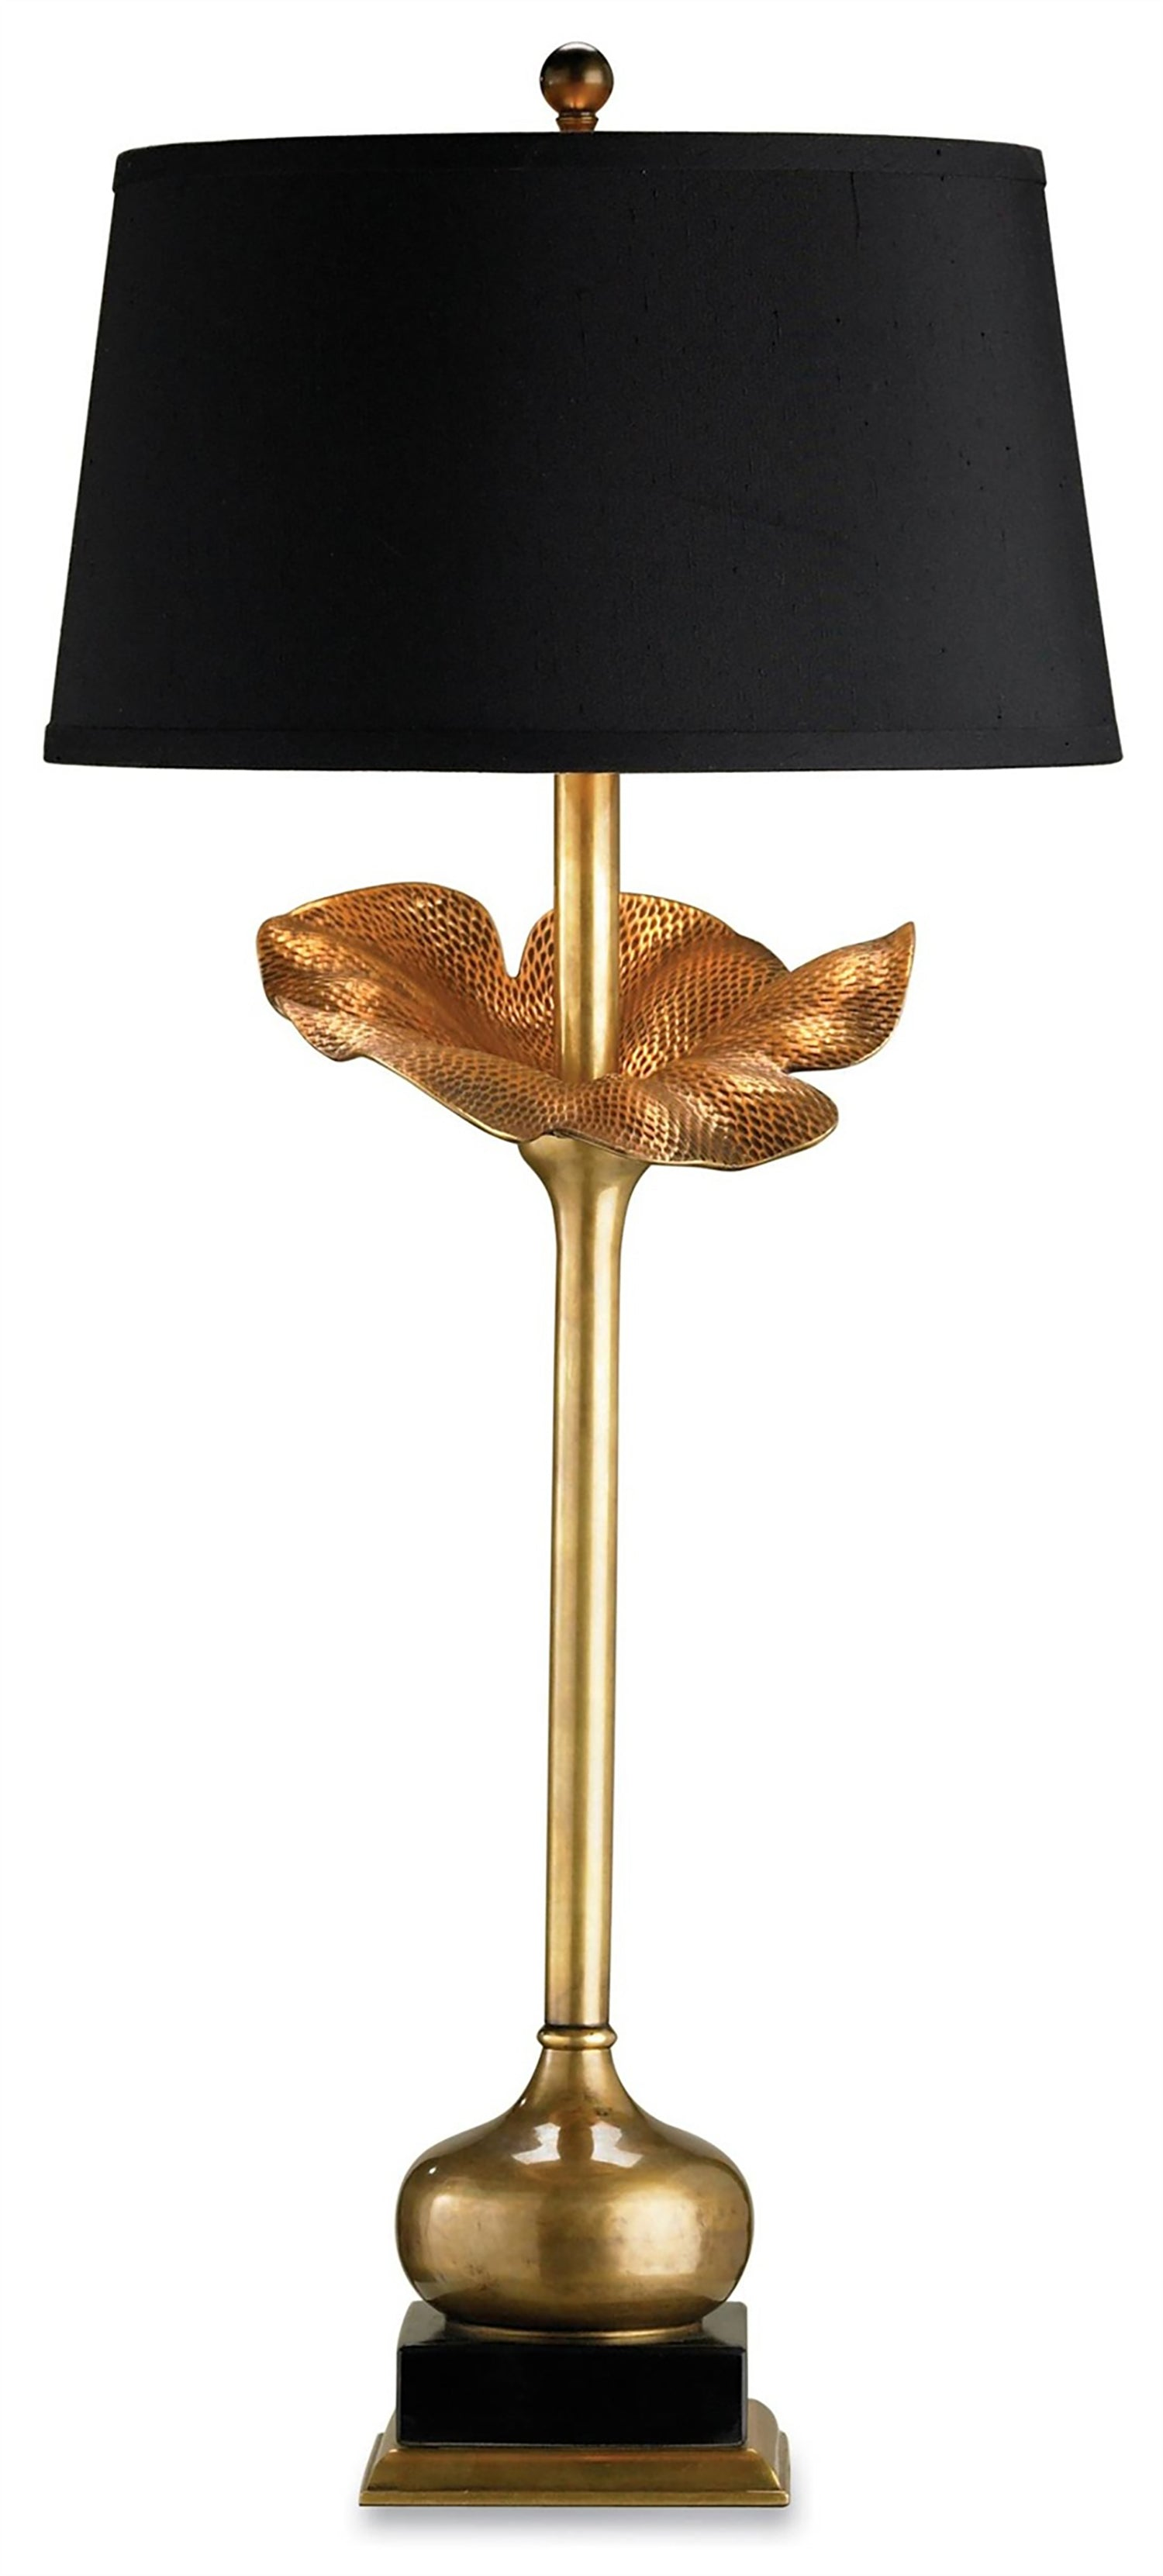 currey and company metamorphosis table lamp Modern Brass and black table lamps for sale